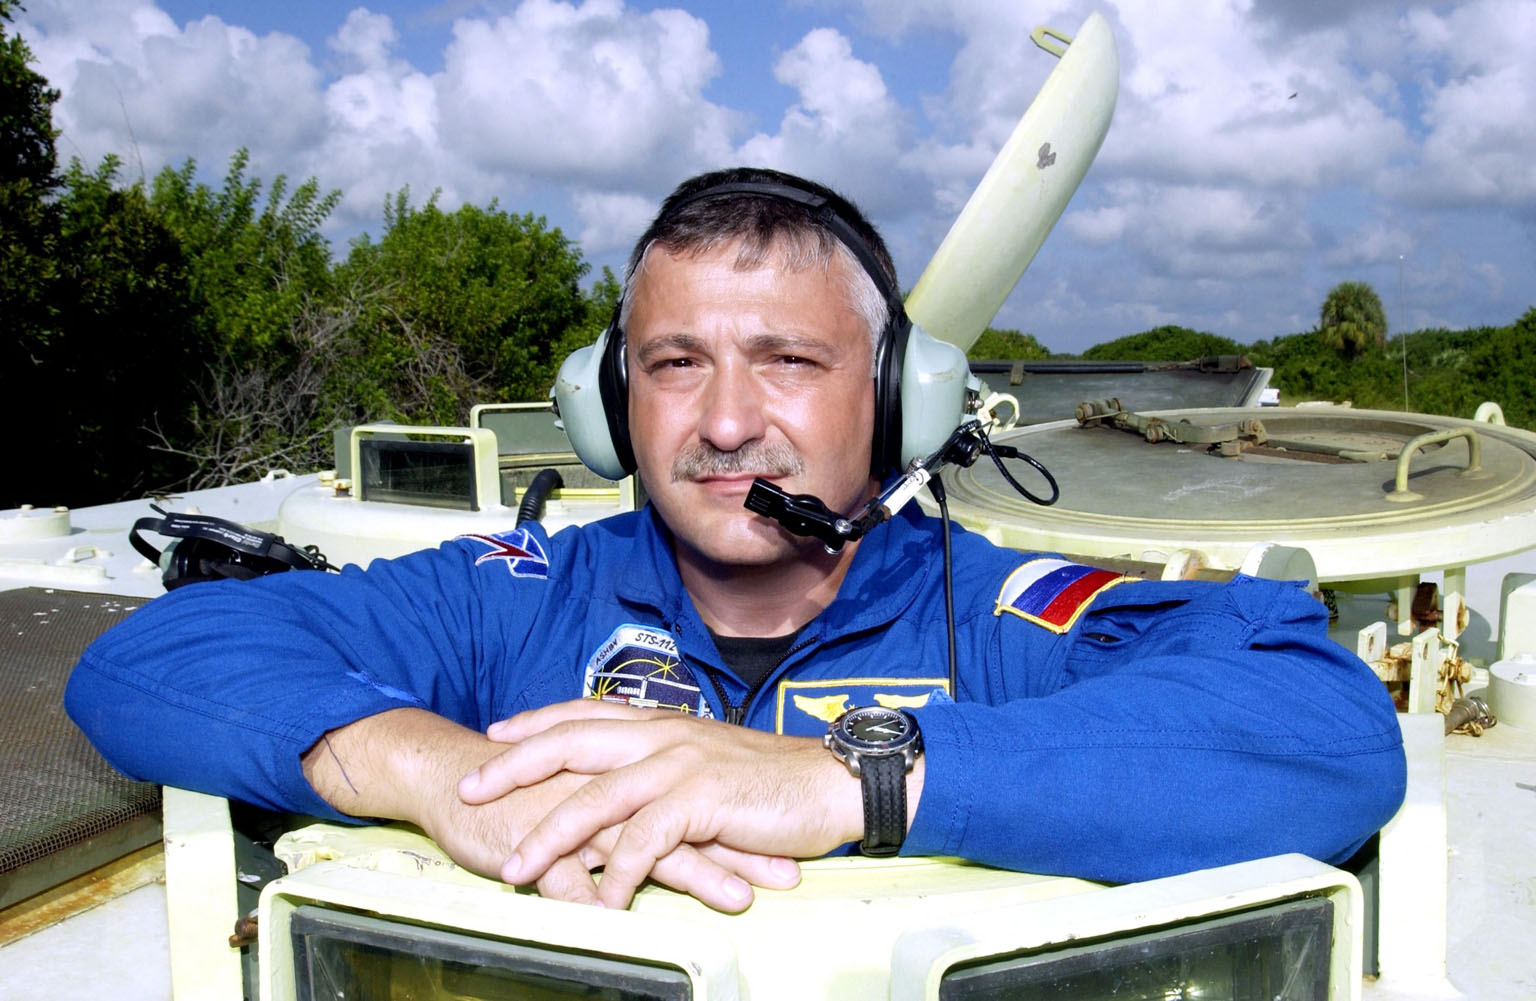 KENNEDY SPACE CENTER, Fla. - STS-112 Mission Specialist Fyodor Yurchikhin, with the Russian Space Agency, Ashby is ready for his practice run driving the M-113 armored personnel carrier. Yurchikhin and the rest of the crew are at KSC for Terminal Countdown Demonstration Test activities, which also include a simulated launch countdown. Mission STS-112 aboard Space Shuttle Atlantis is scheduled to launch no earlier than Oct. 2, between 2 and 6 p.m. EDT. STS-112 is the 15th assembly mission to the International Space Station. Atlantis will be carrying the S1 Integrated Truss Structure, the first starboard truss segment. The S1 will be attached to the central truss segment, S0, during the 11-day mission.